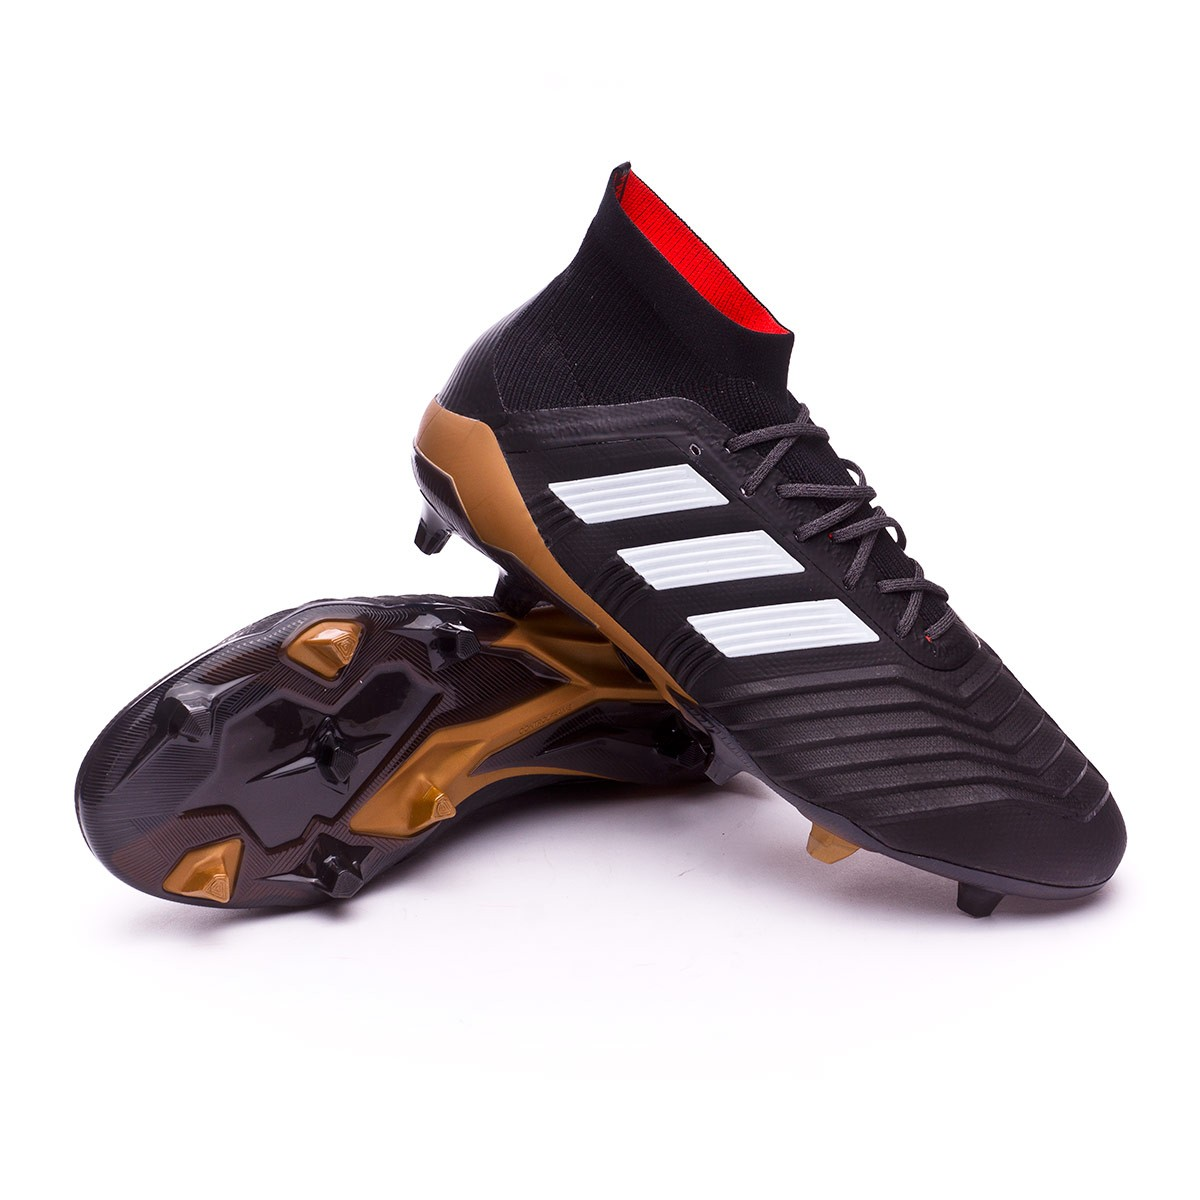 d9baa48f19c1 Football Boots adidas Predator 18.1 FG Core black-White-Gold ...